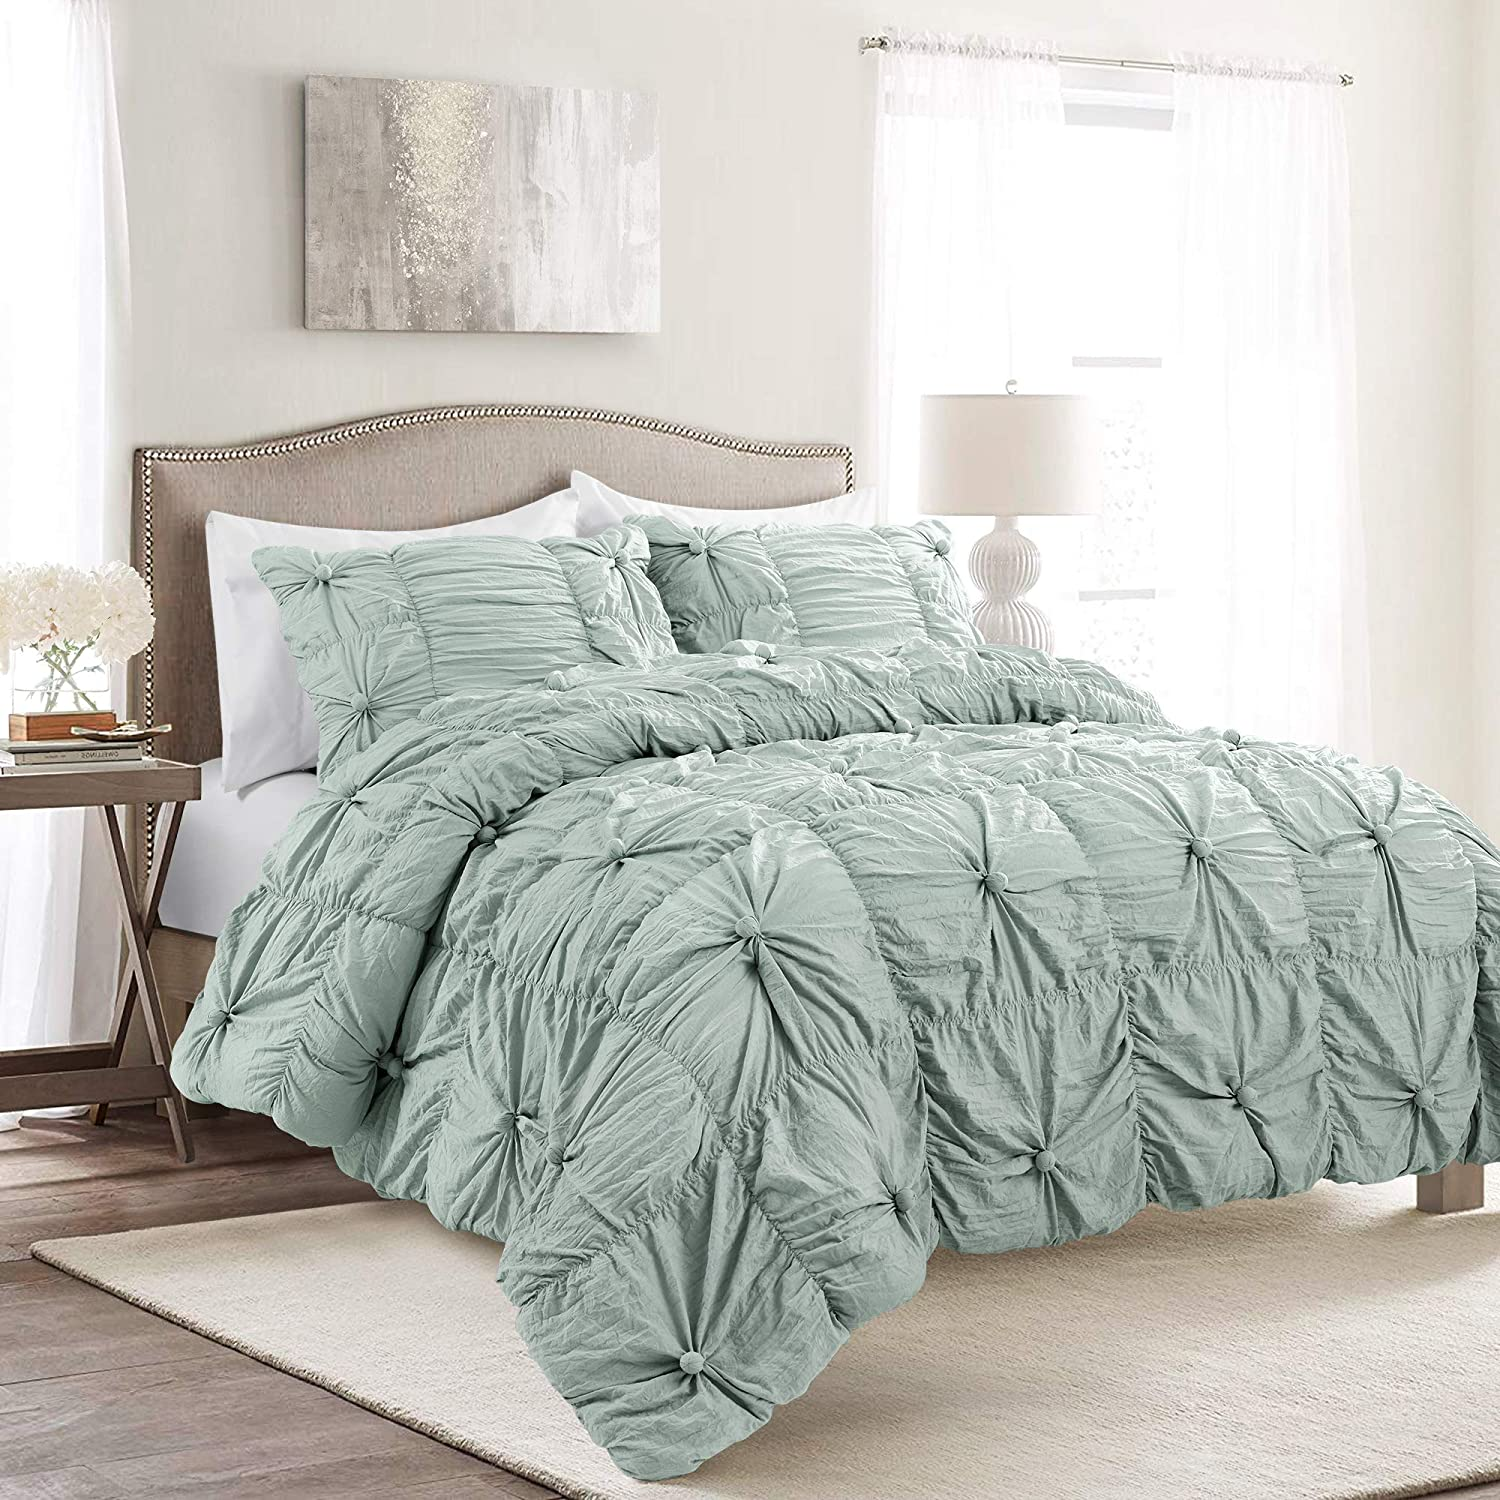 Lush Decor Bella Comforter Set Shabby Chic Style Ruched 3 Piece Bedding with Pillow Shams-Full Queen-Blue